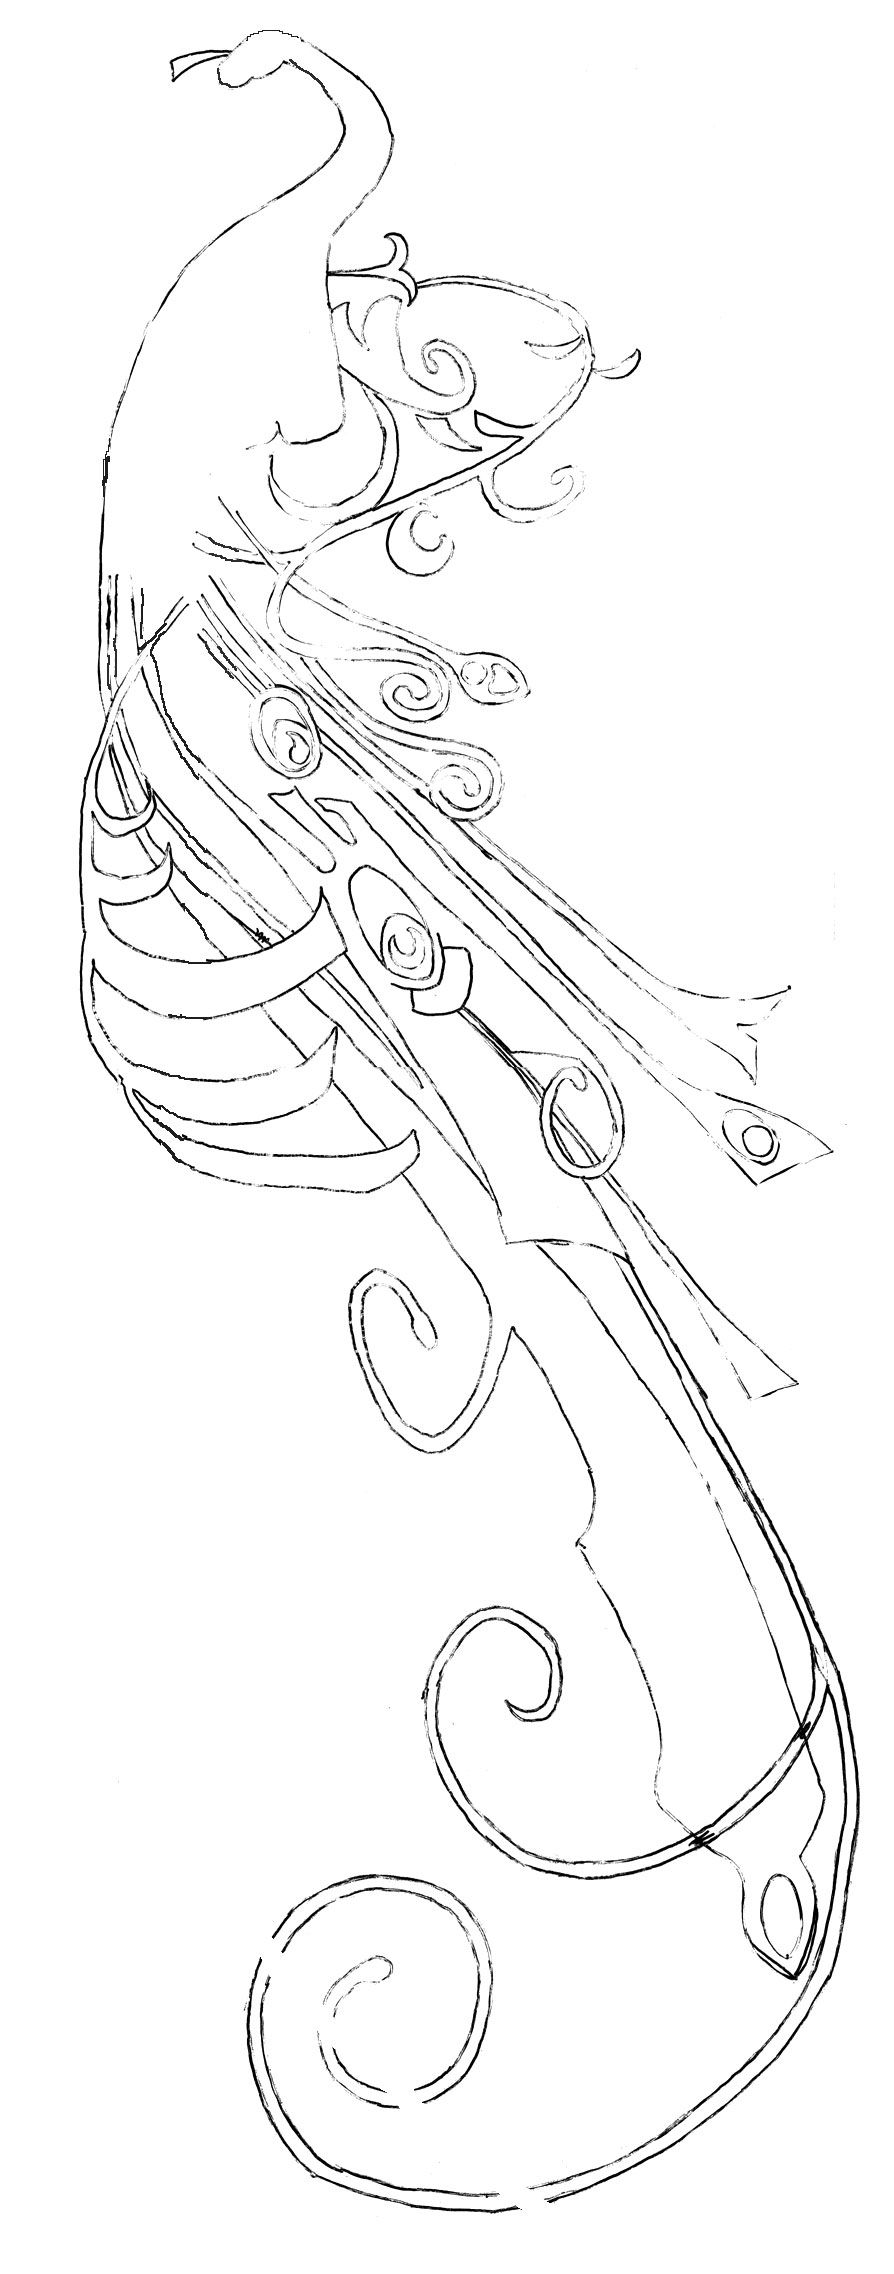 Quiver free coloring pages - Legolas Peacock Quiver Pattern